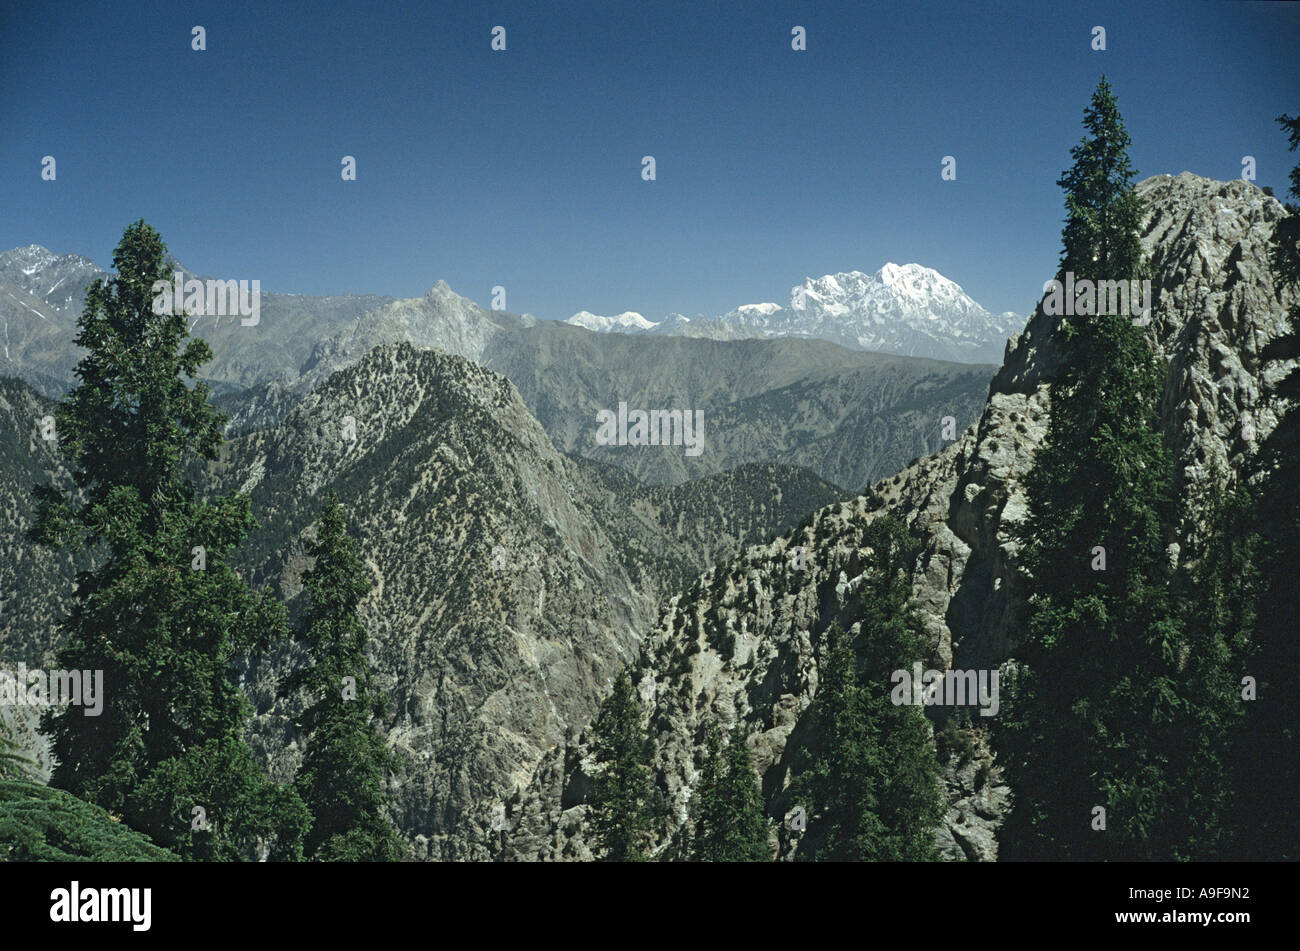 Mountain view towards Afghanistan from Pakistan Kalash valley Chitral North West frontier region Pakistan - Stock Image